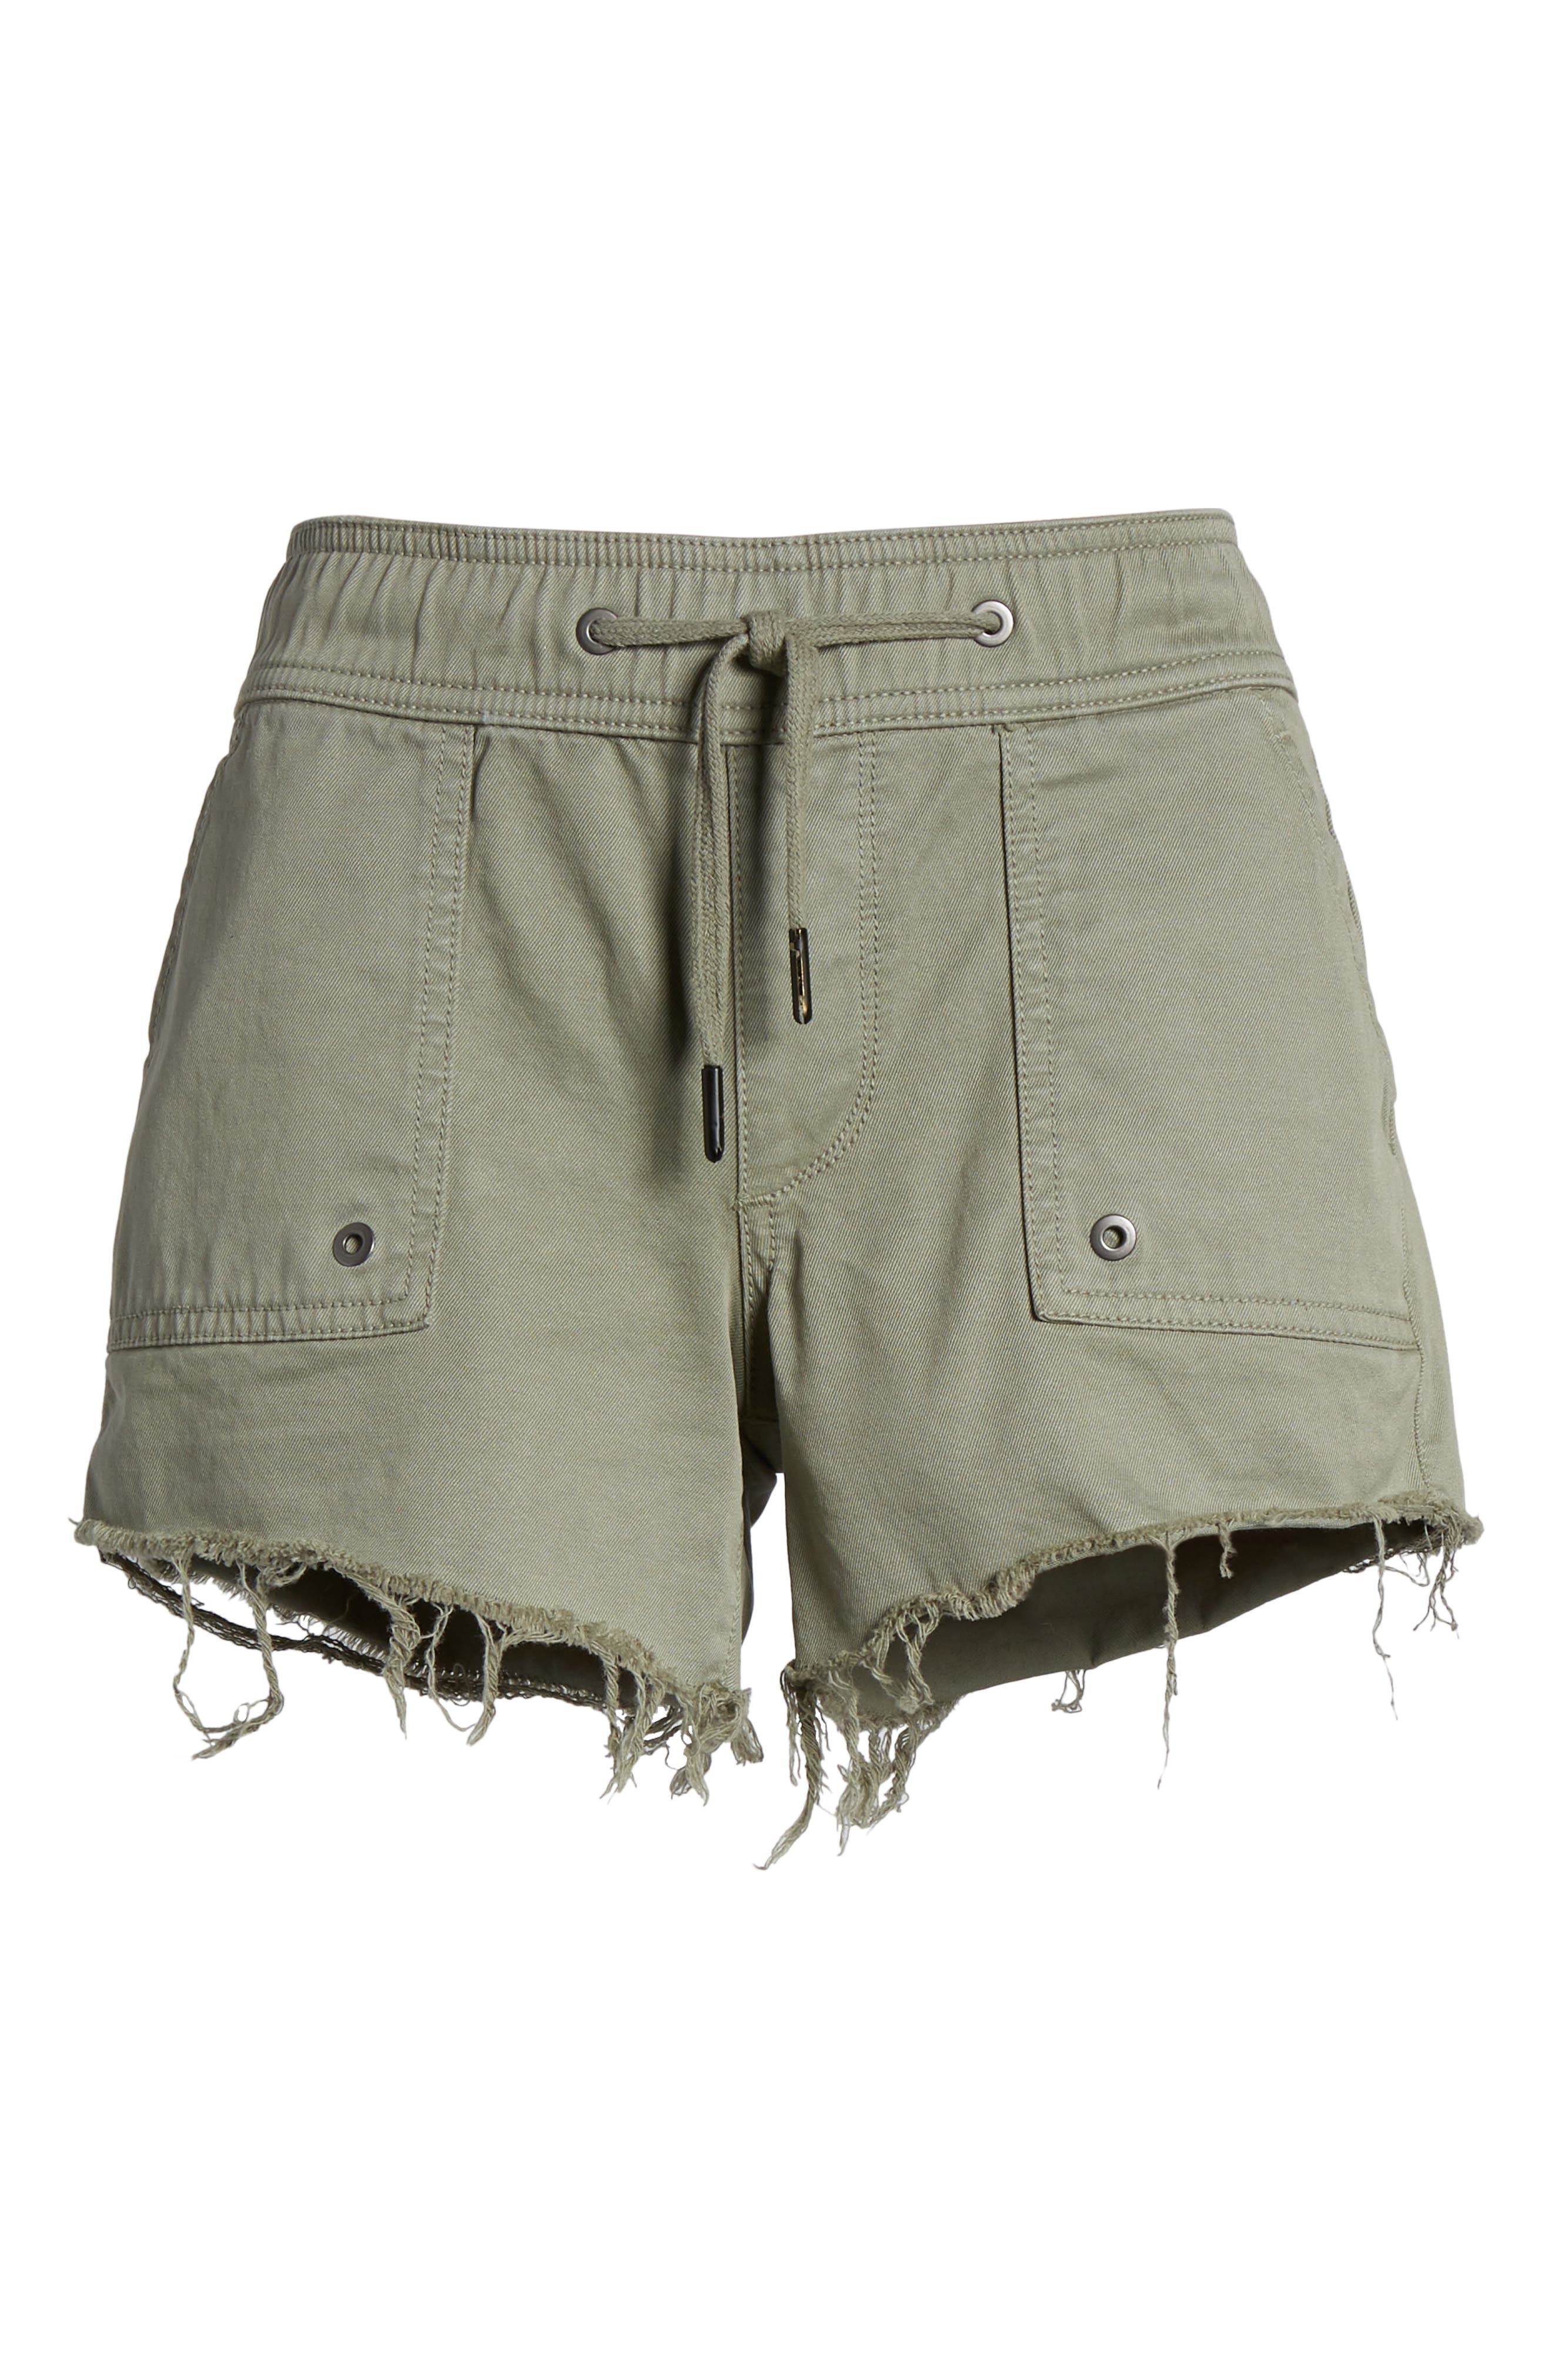 Flynn Low Rise Military Shorts,                             Alternate thumbnail 7, color,                             Grove